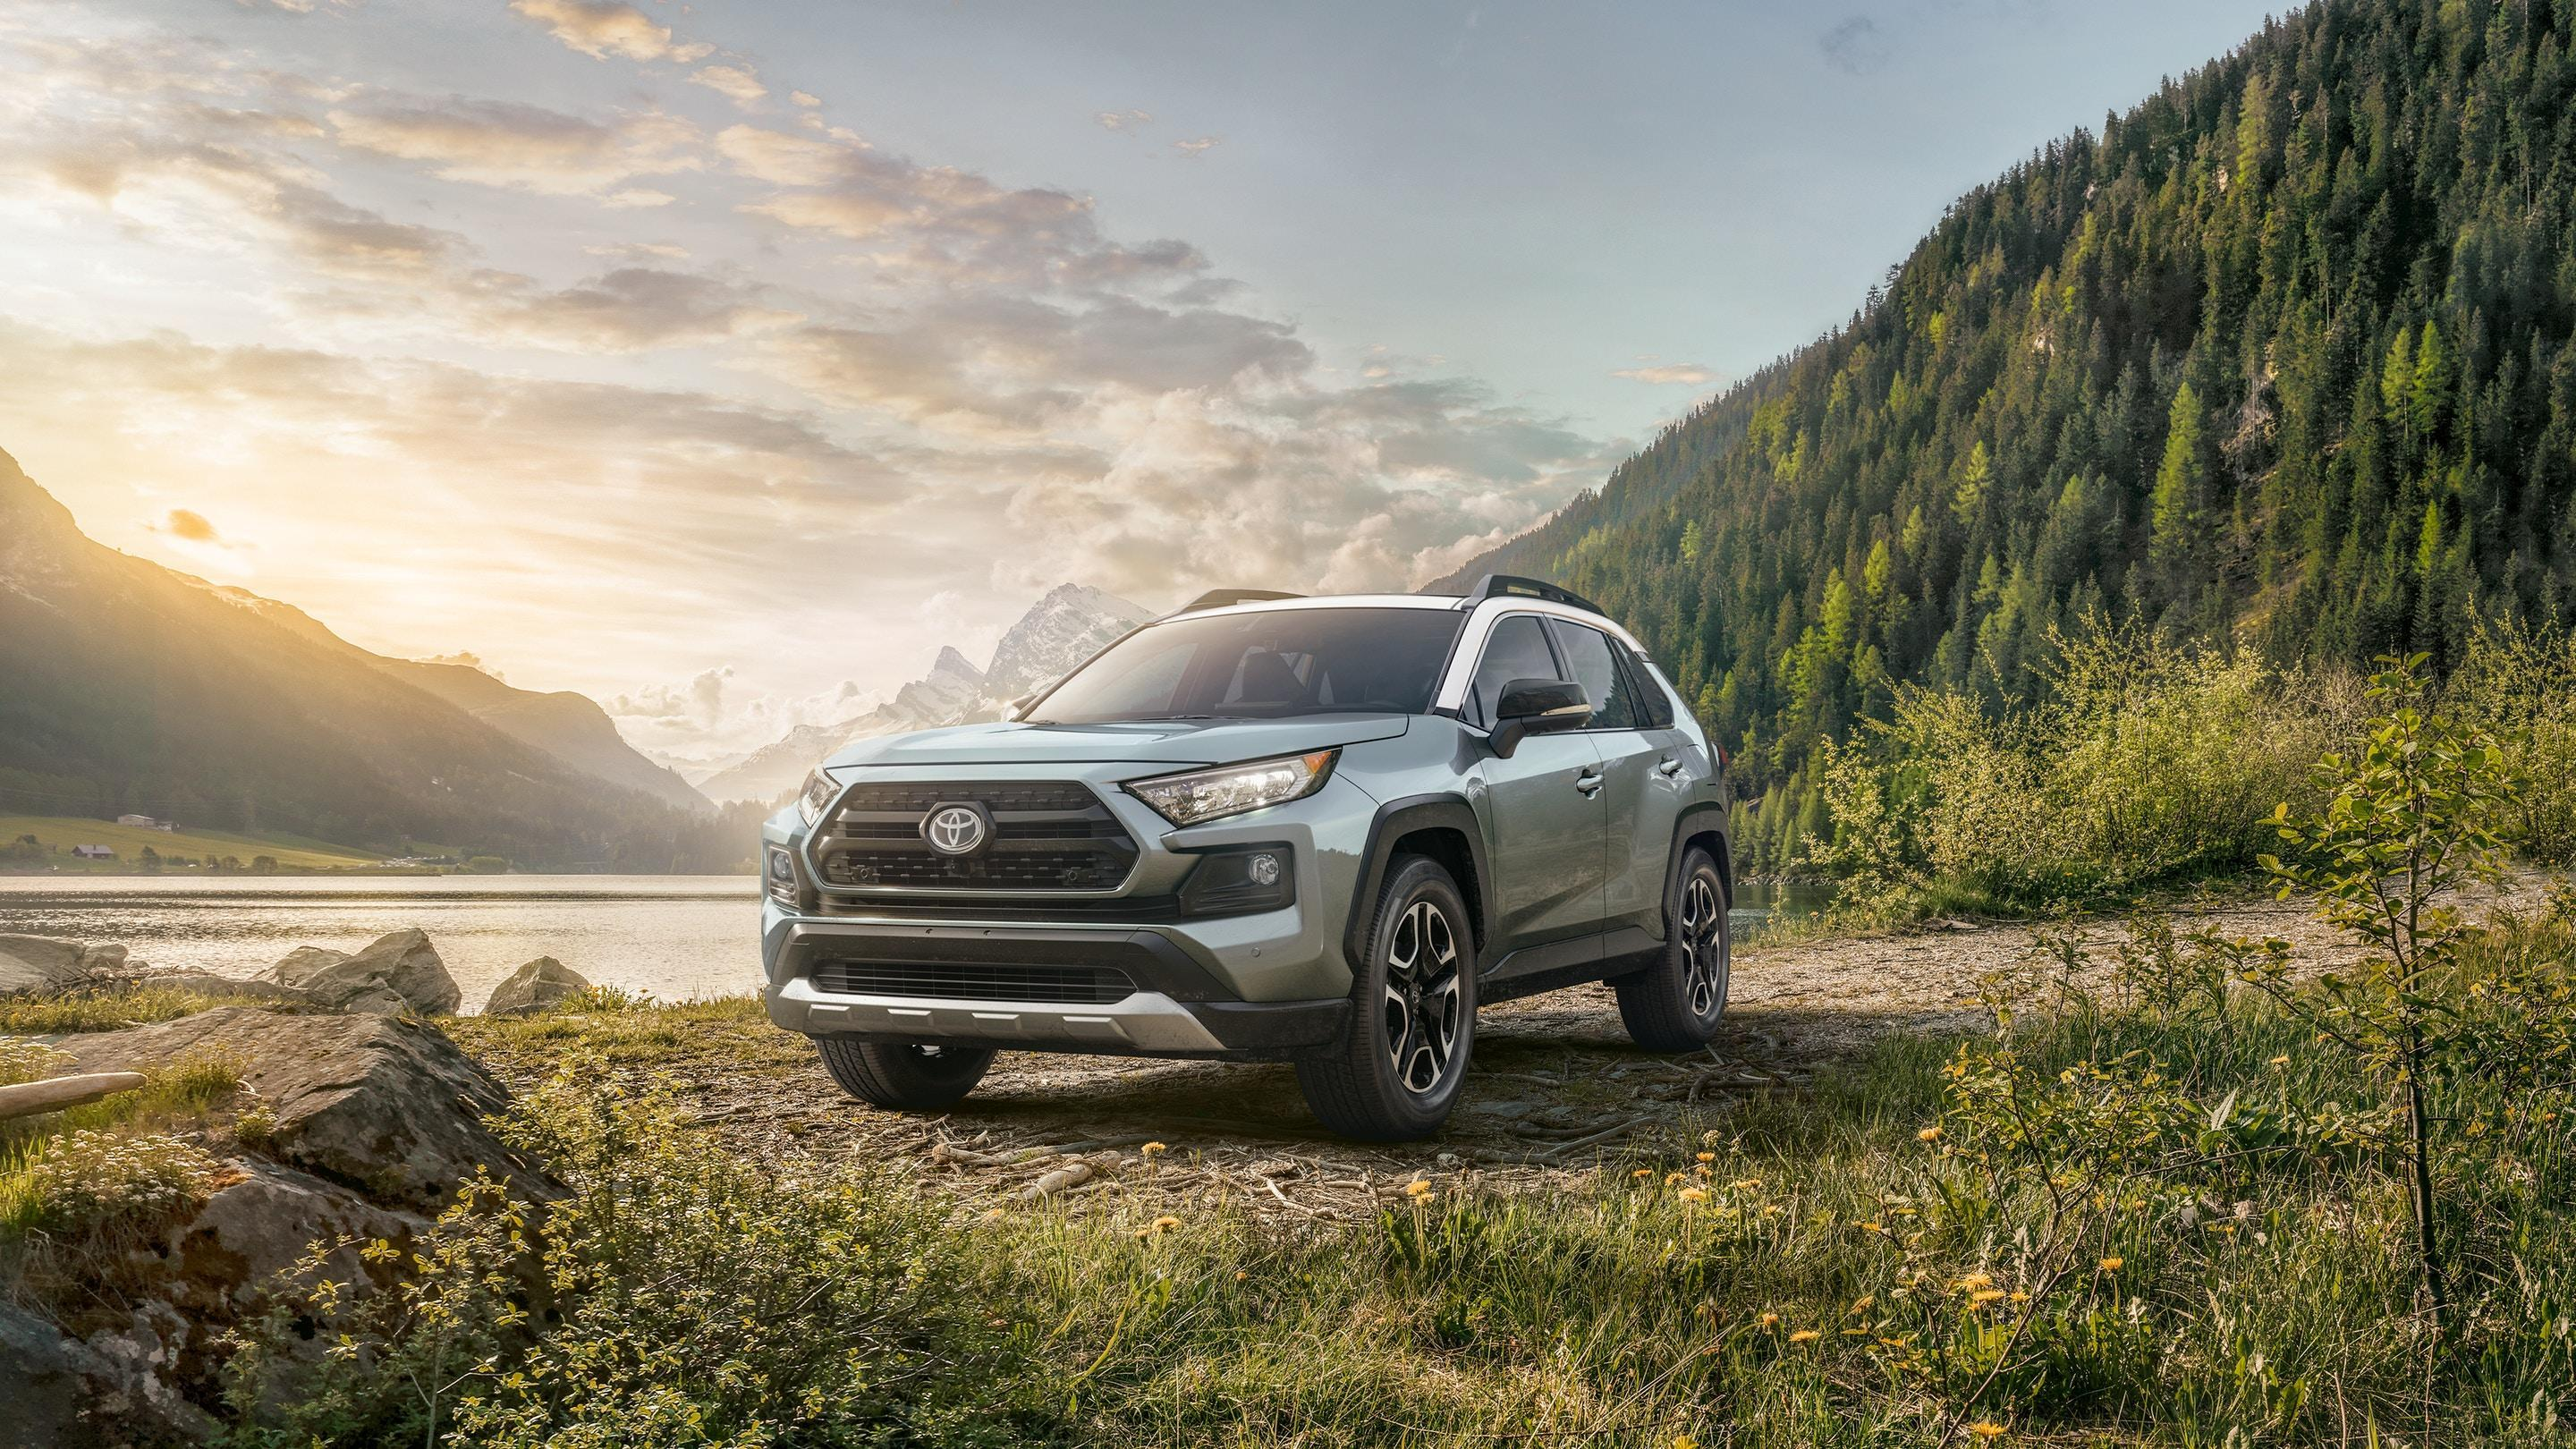 2019 Toyota RAV4 for Sale in Ft. Collins